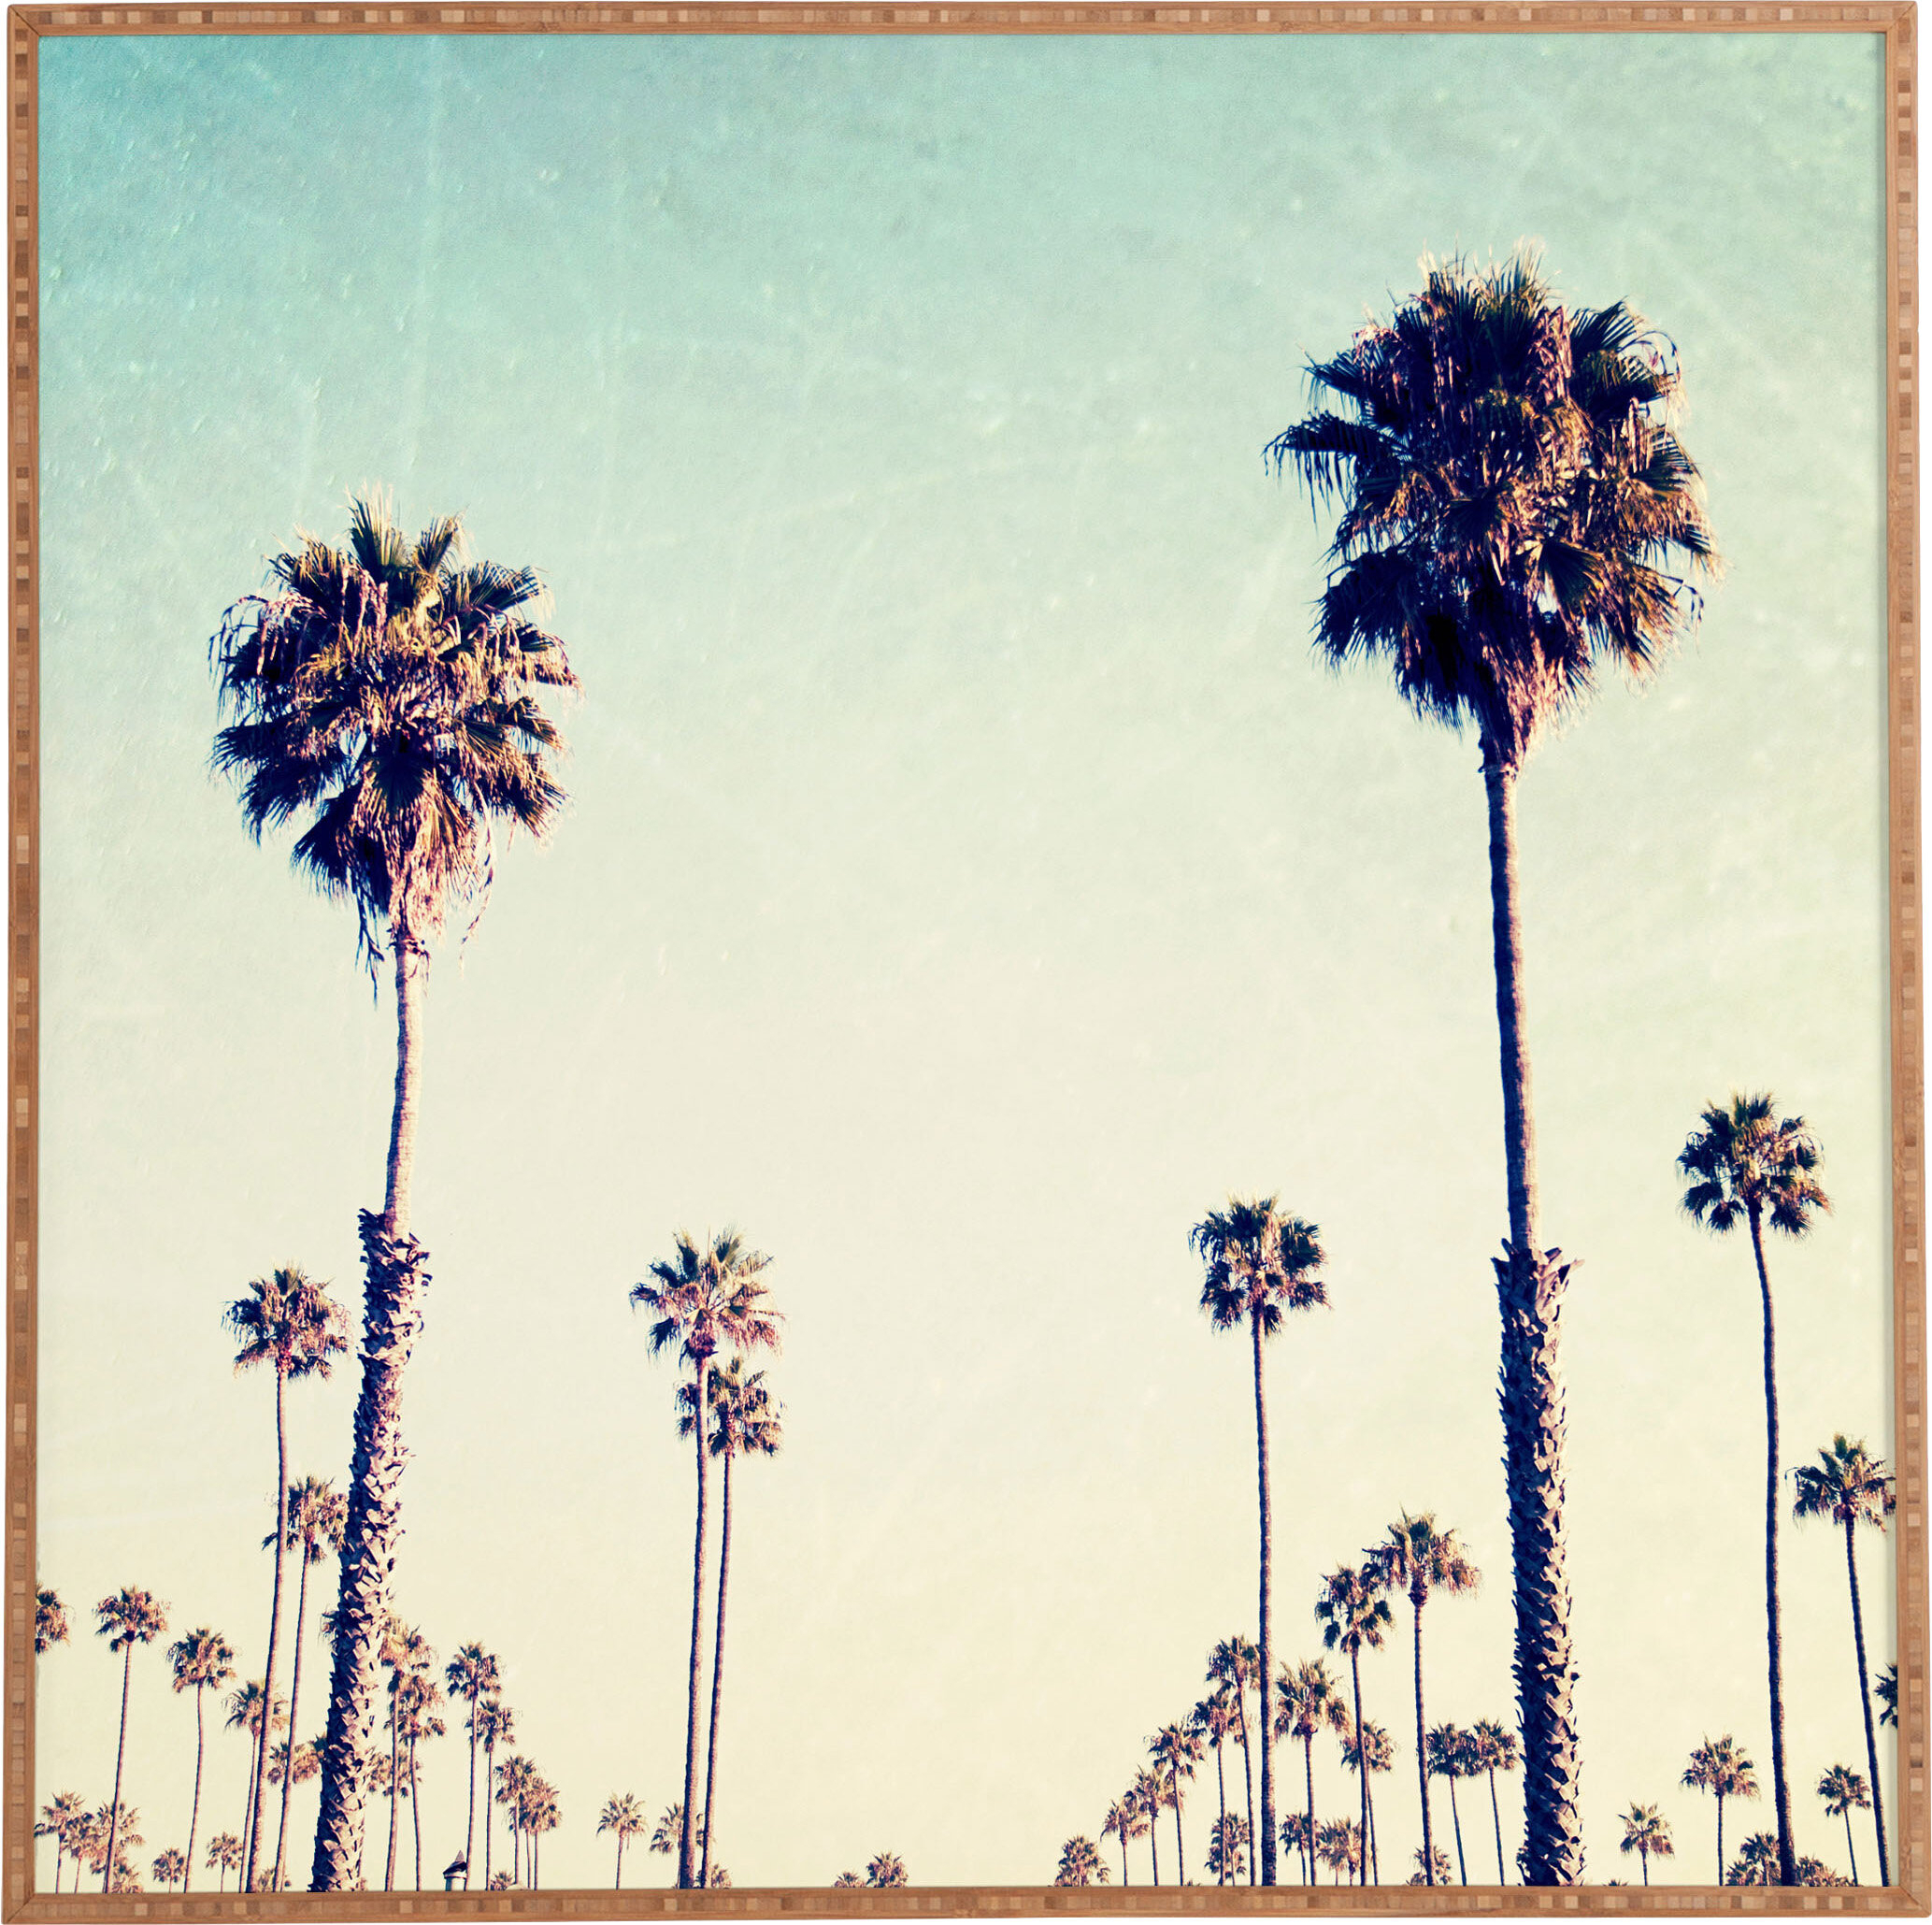 California Palm Trees – Picture Frame Print On Paper Within Latest Blended Fabric Palm Tree Wall Hangings (View 5 of 20)